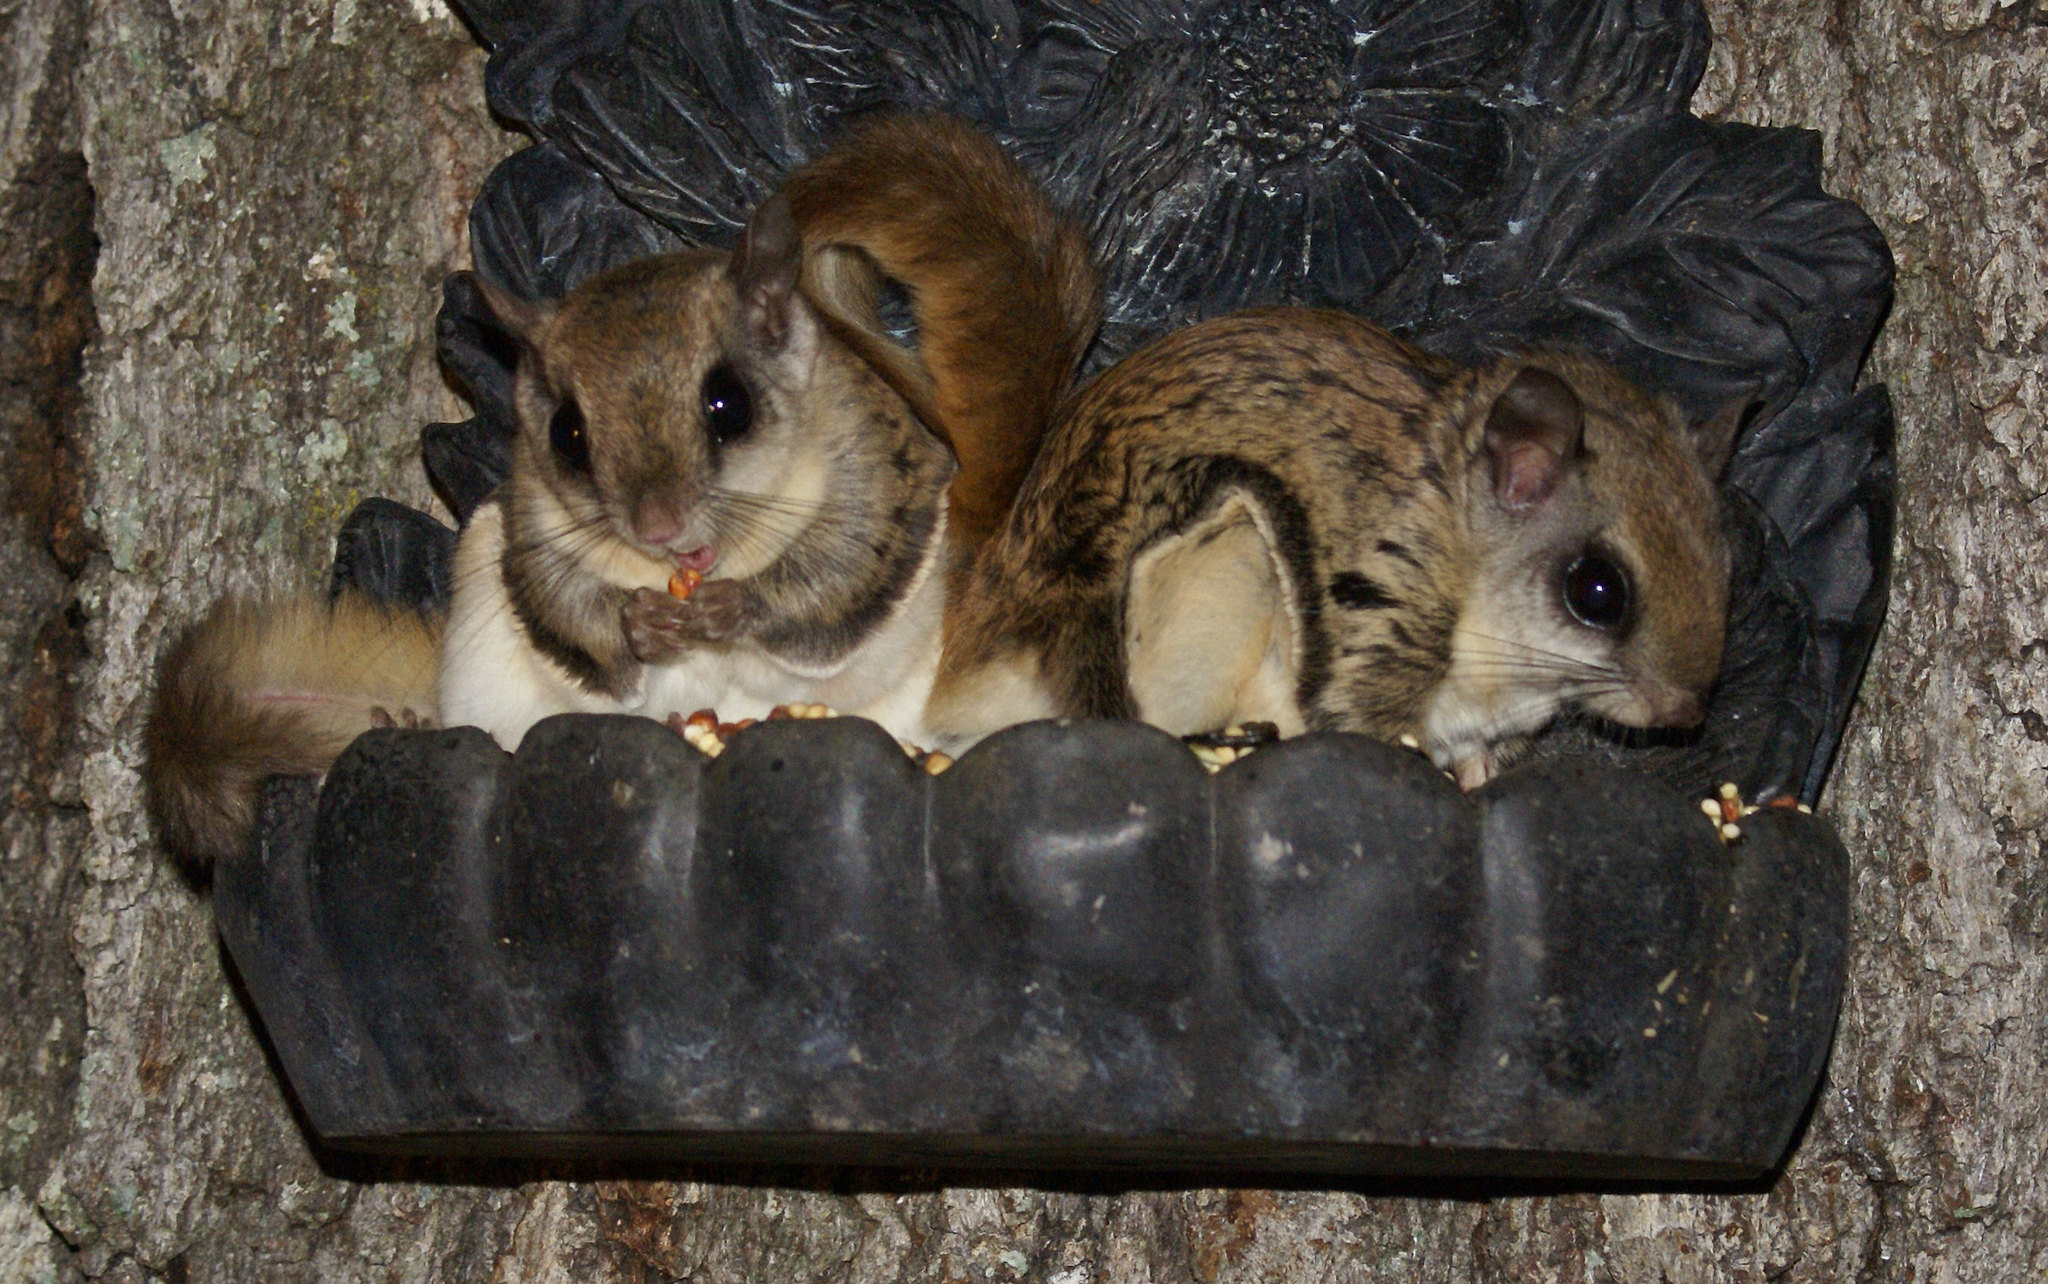 Two southern flying squirrels enjoy a midnight snack from a bird feeder.